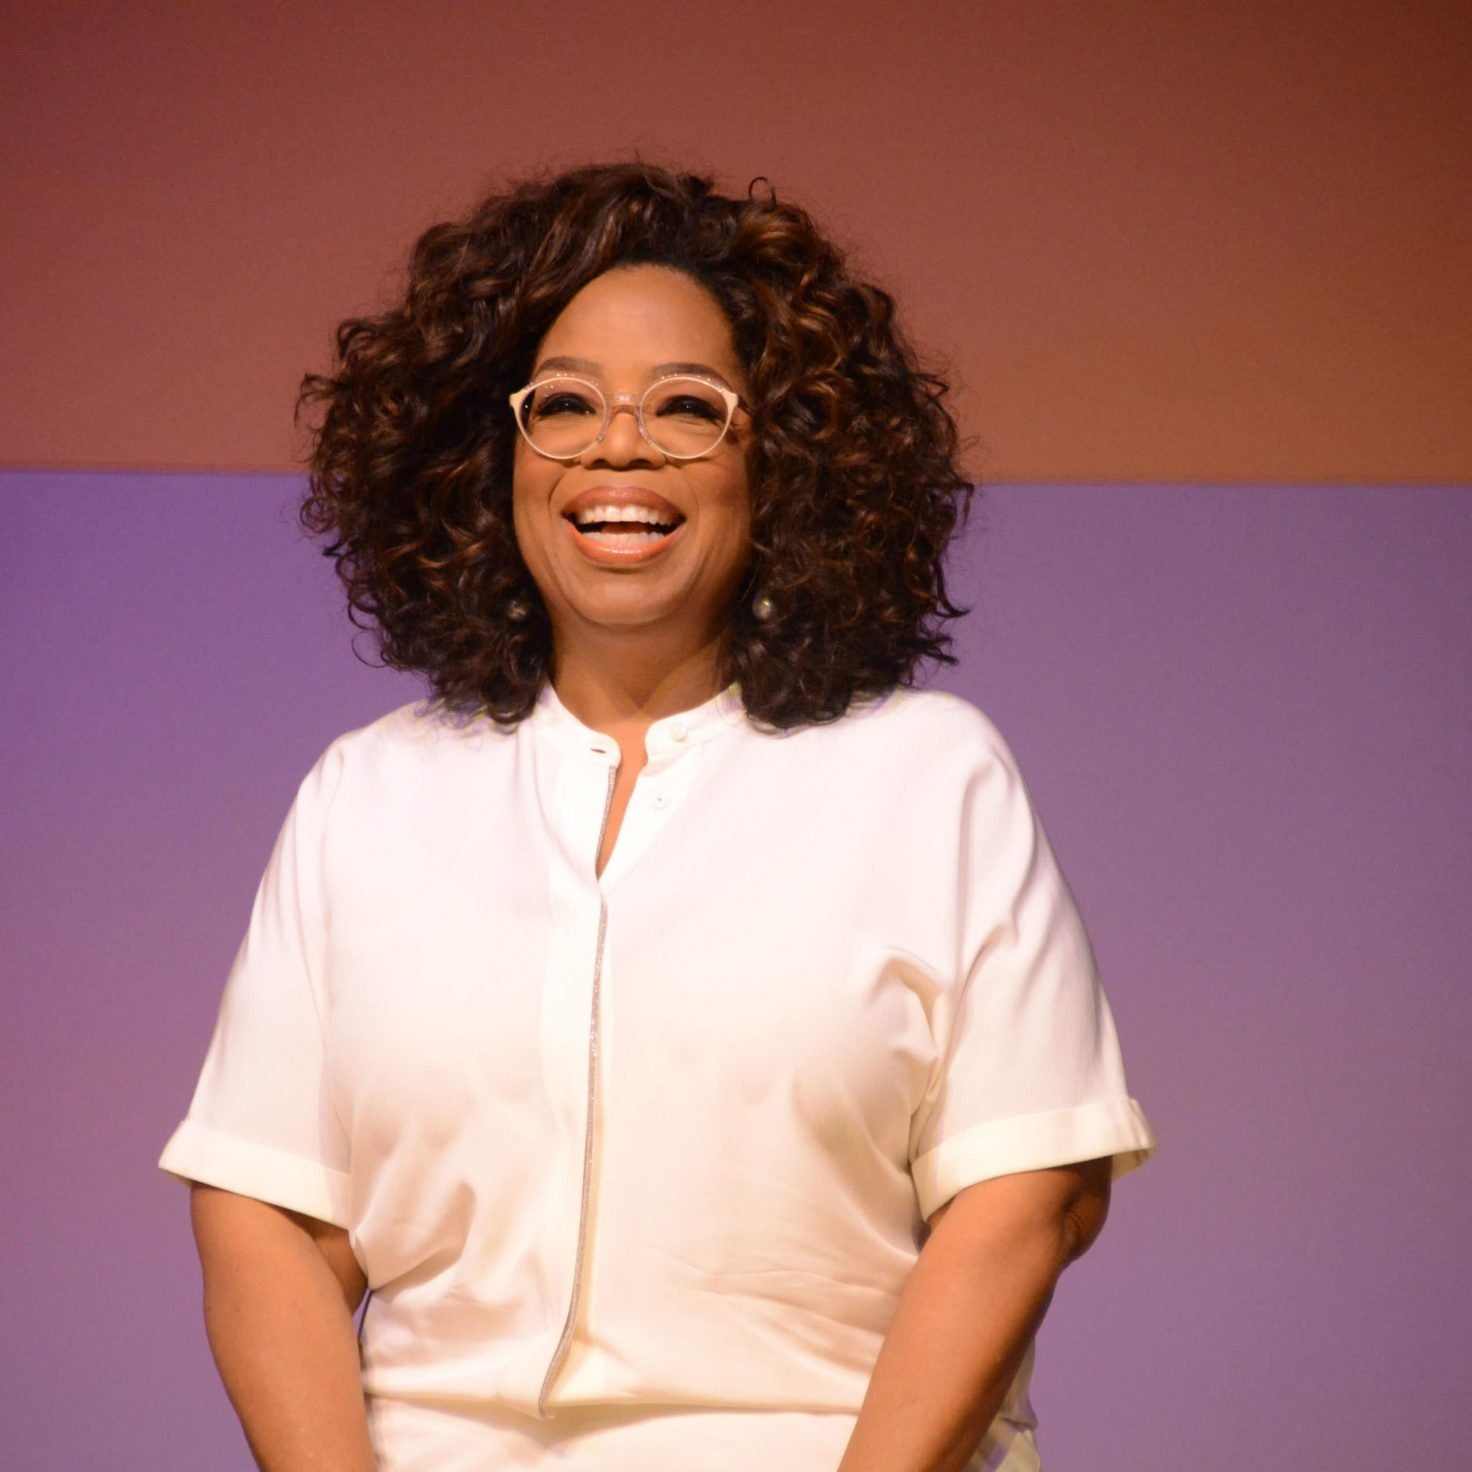 Oprah Winfrey Roasted This Student's Cracked Phone, Then Sent Him A New One